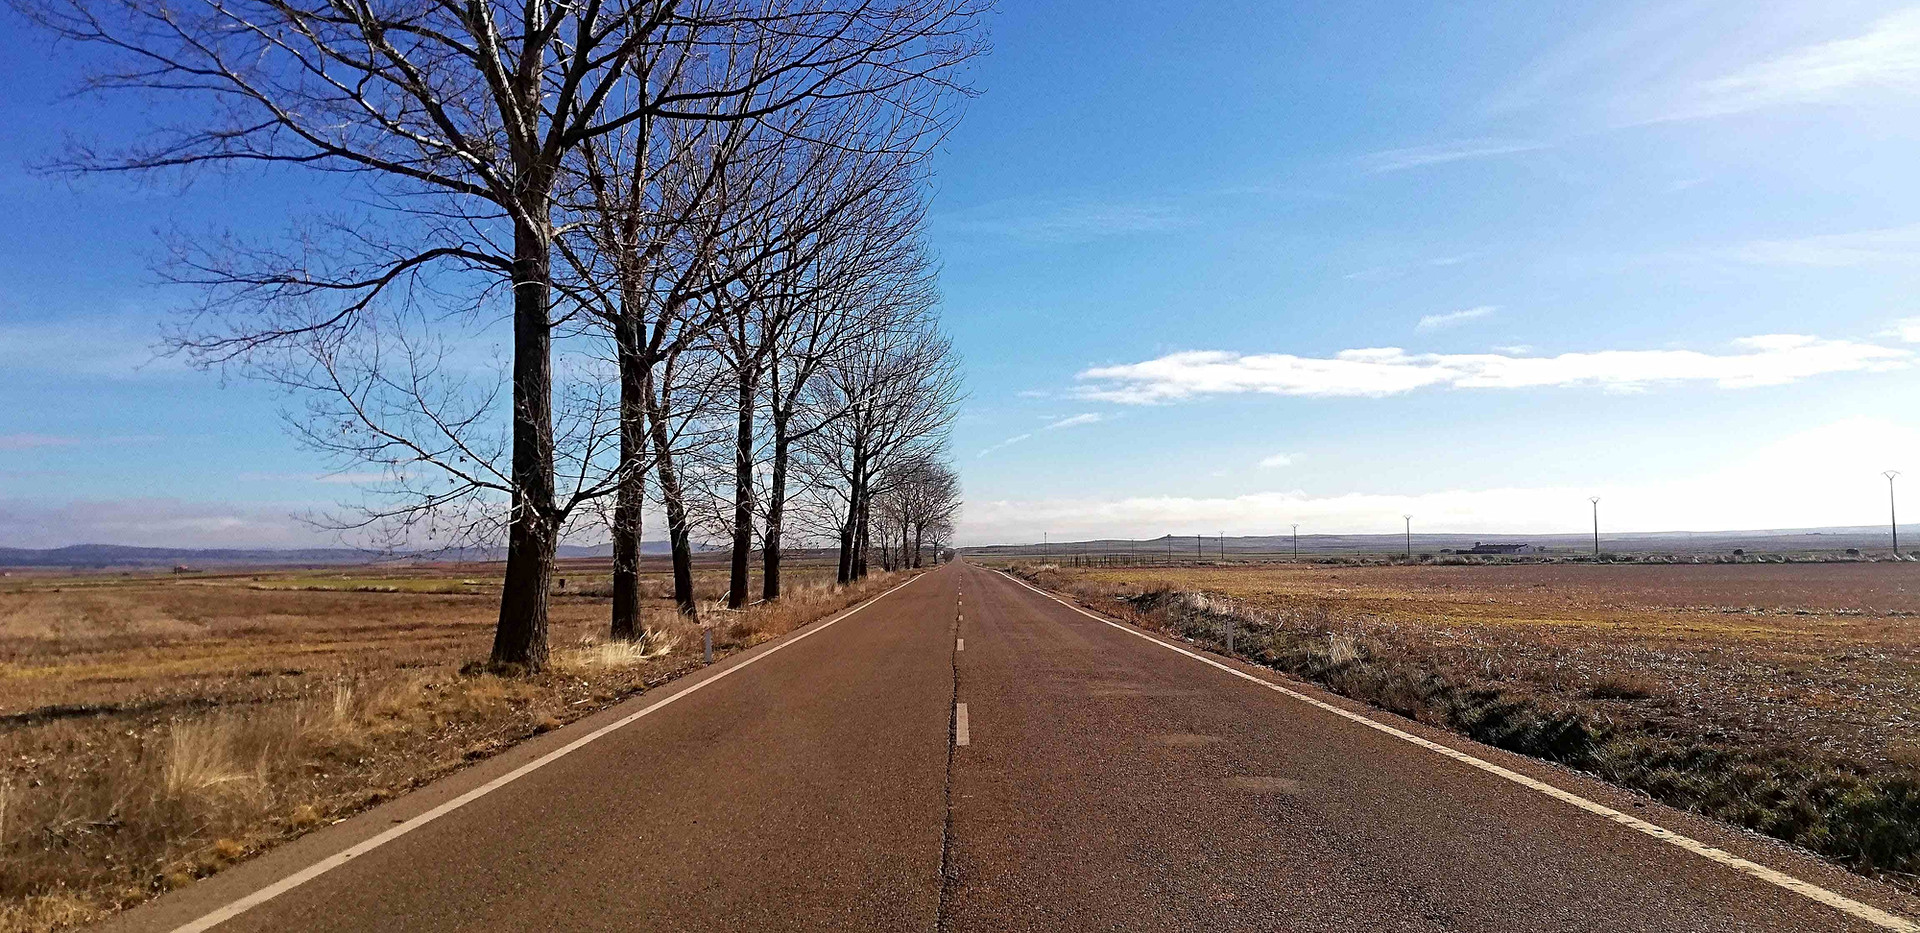 Carretera recta / Straight road